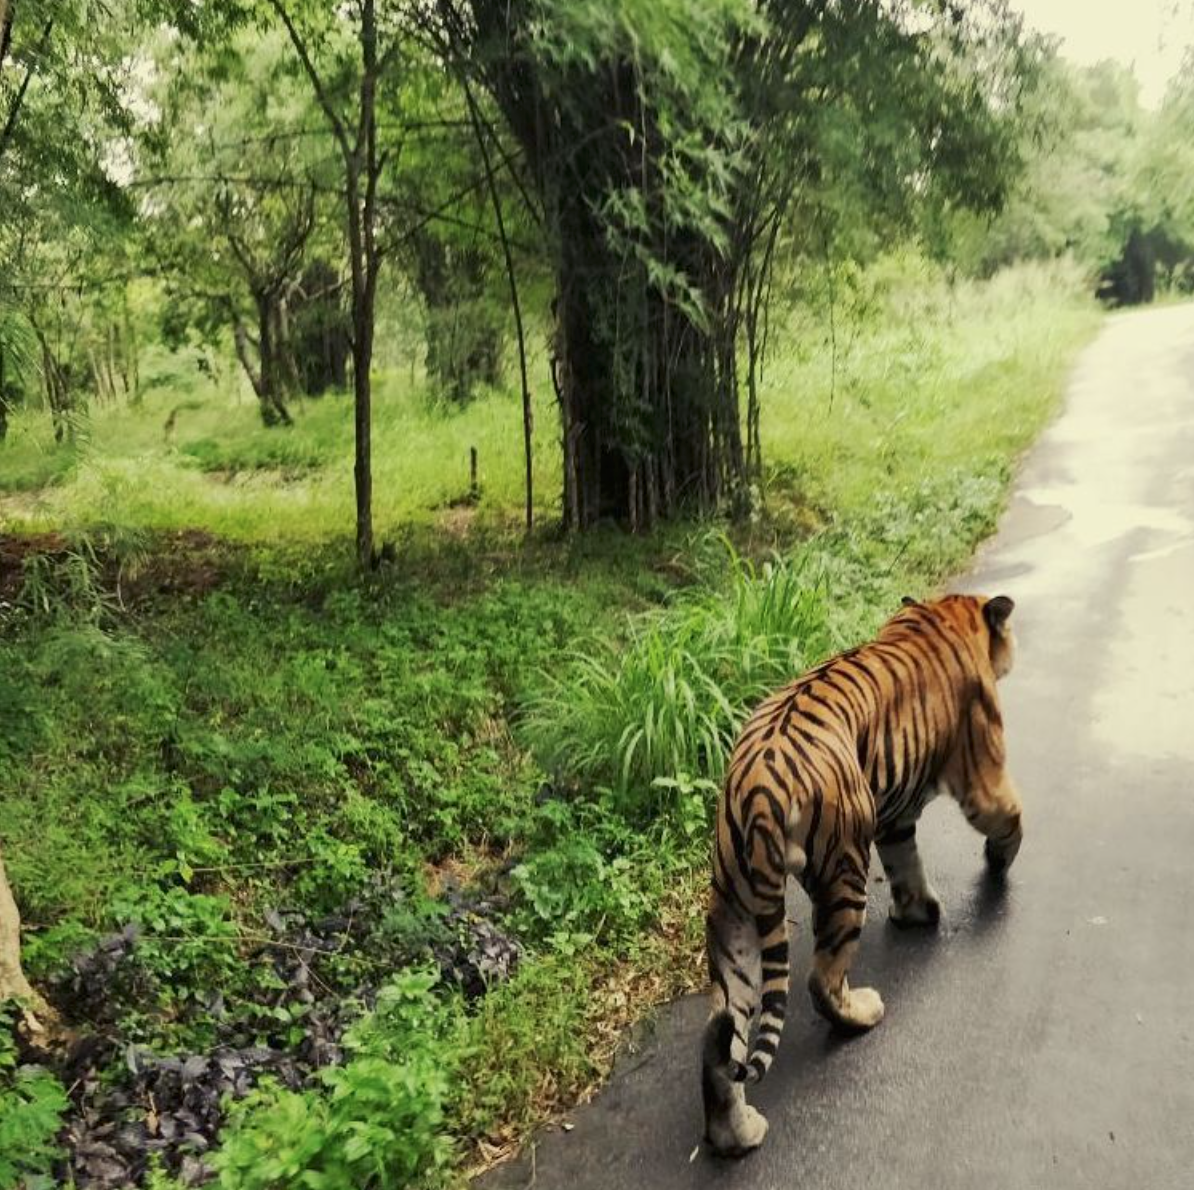 Photo of Bannerughatta National Park By RIDDHI MISHRA